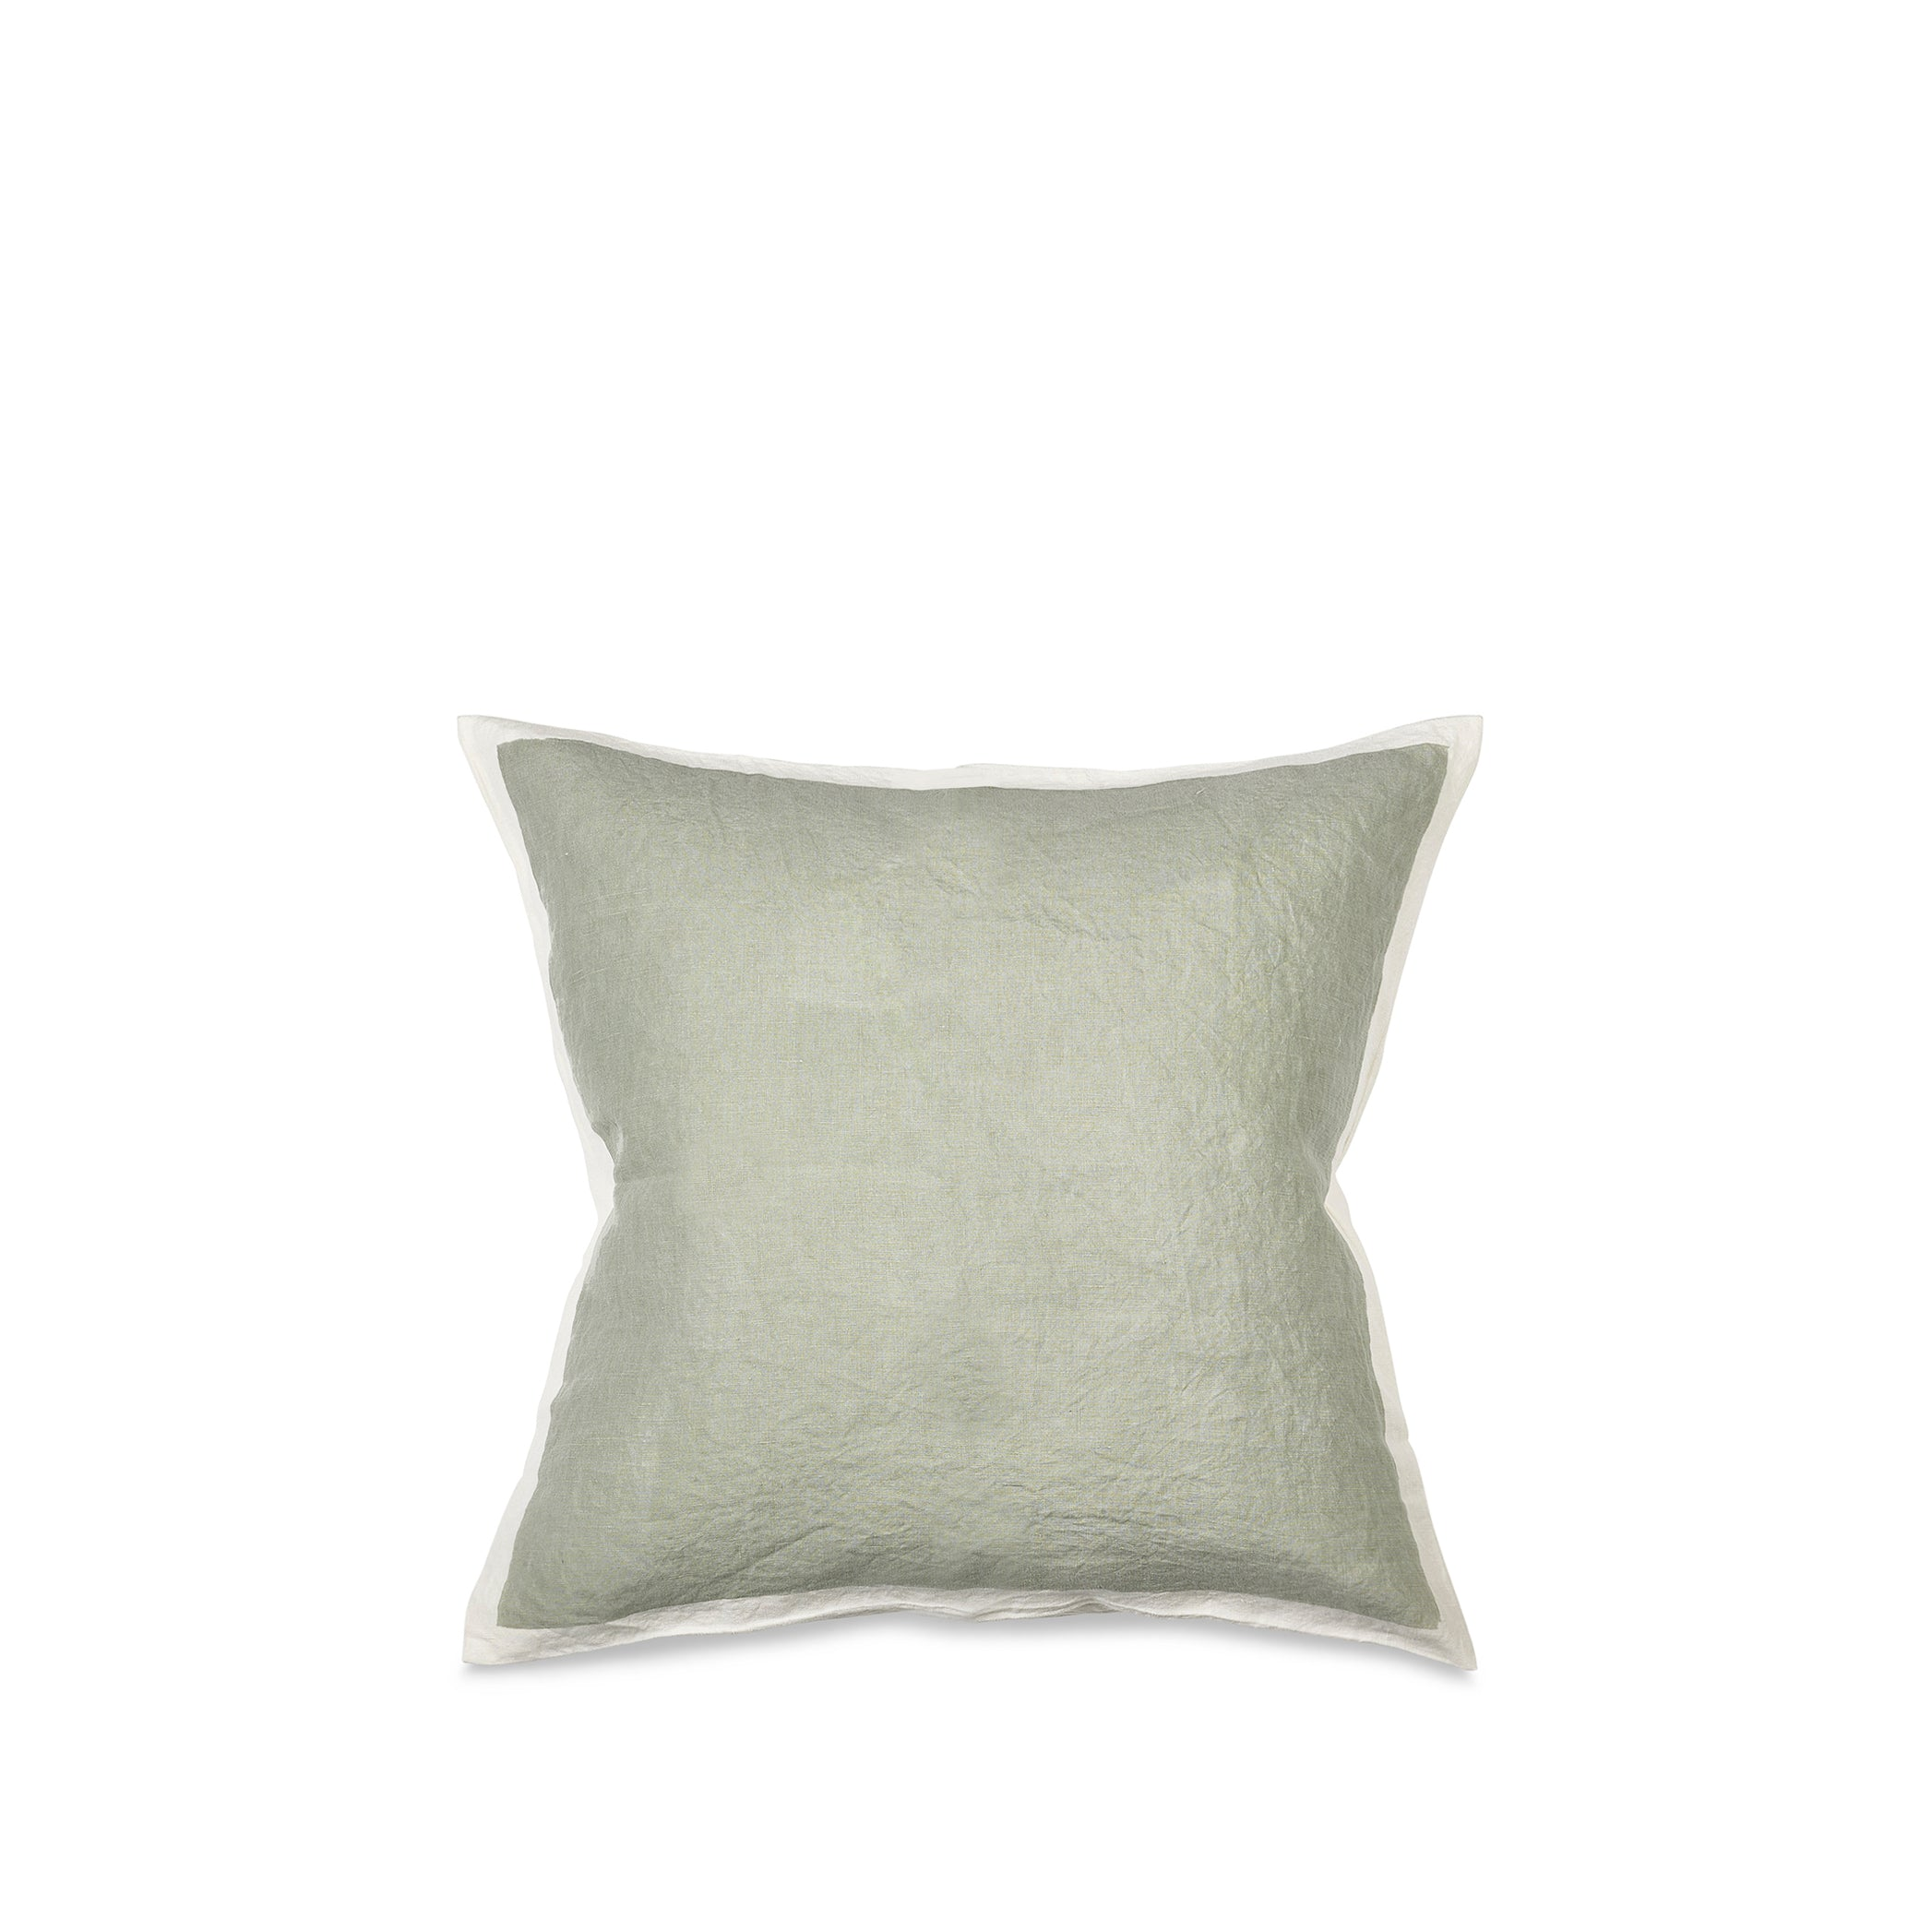 Hand Painted Linen Cushion in Pale Green, 50cm x 50cm